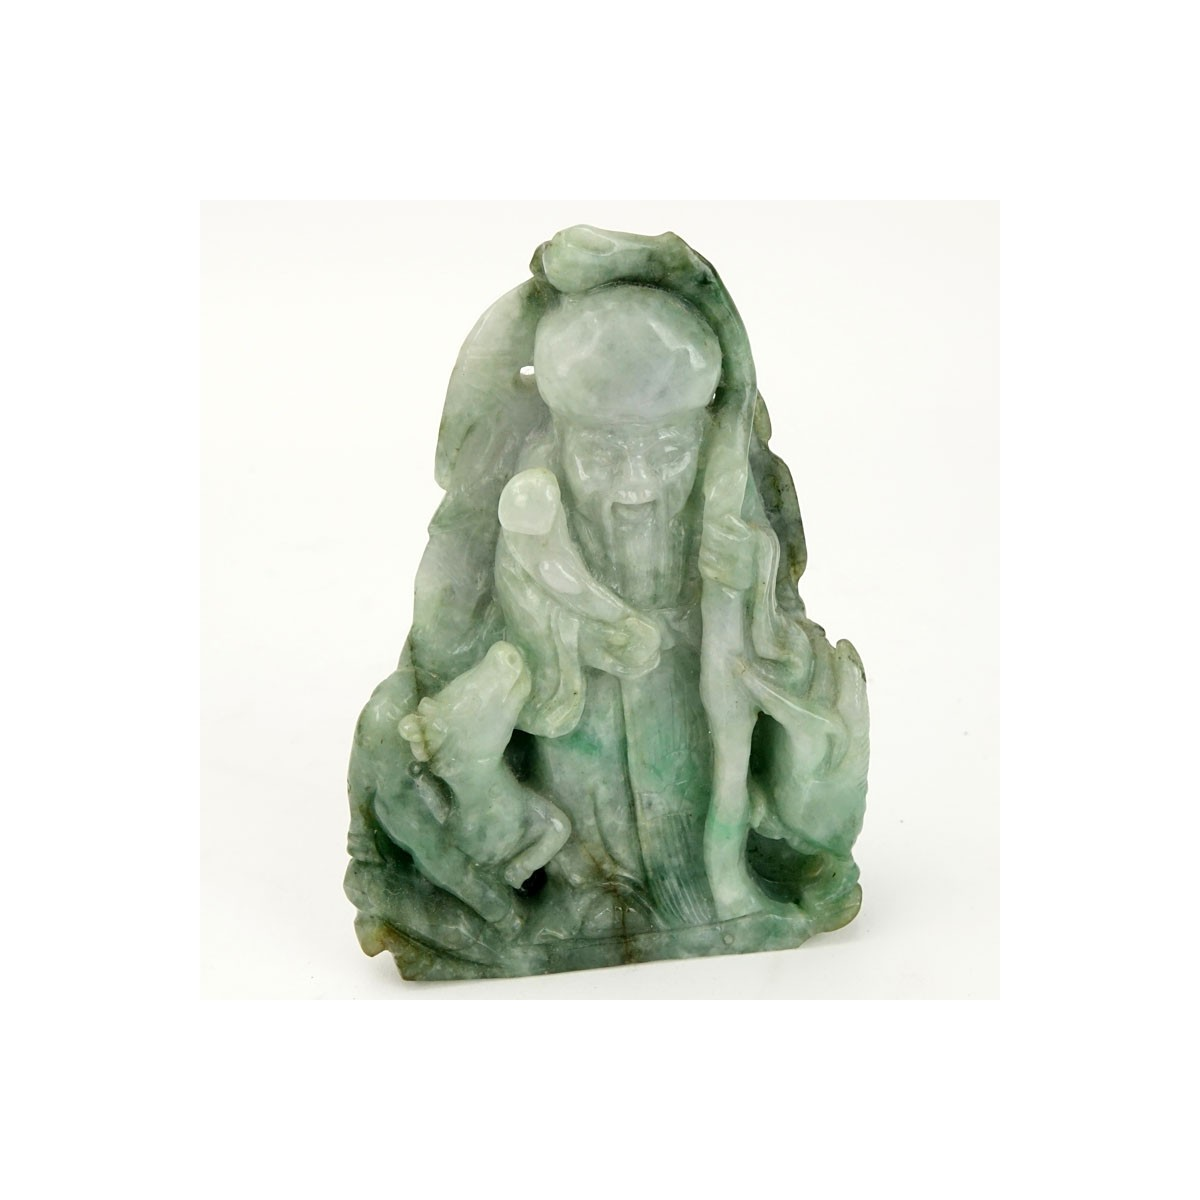 Chinese Carved Jade Shou Lao Figurine. Depicted holding staff and scepter. Light to dark green in c